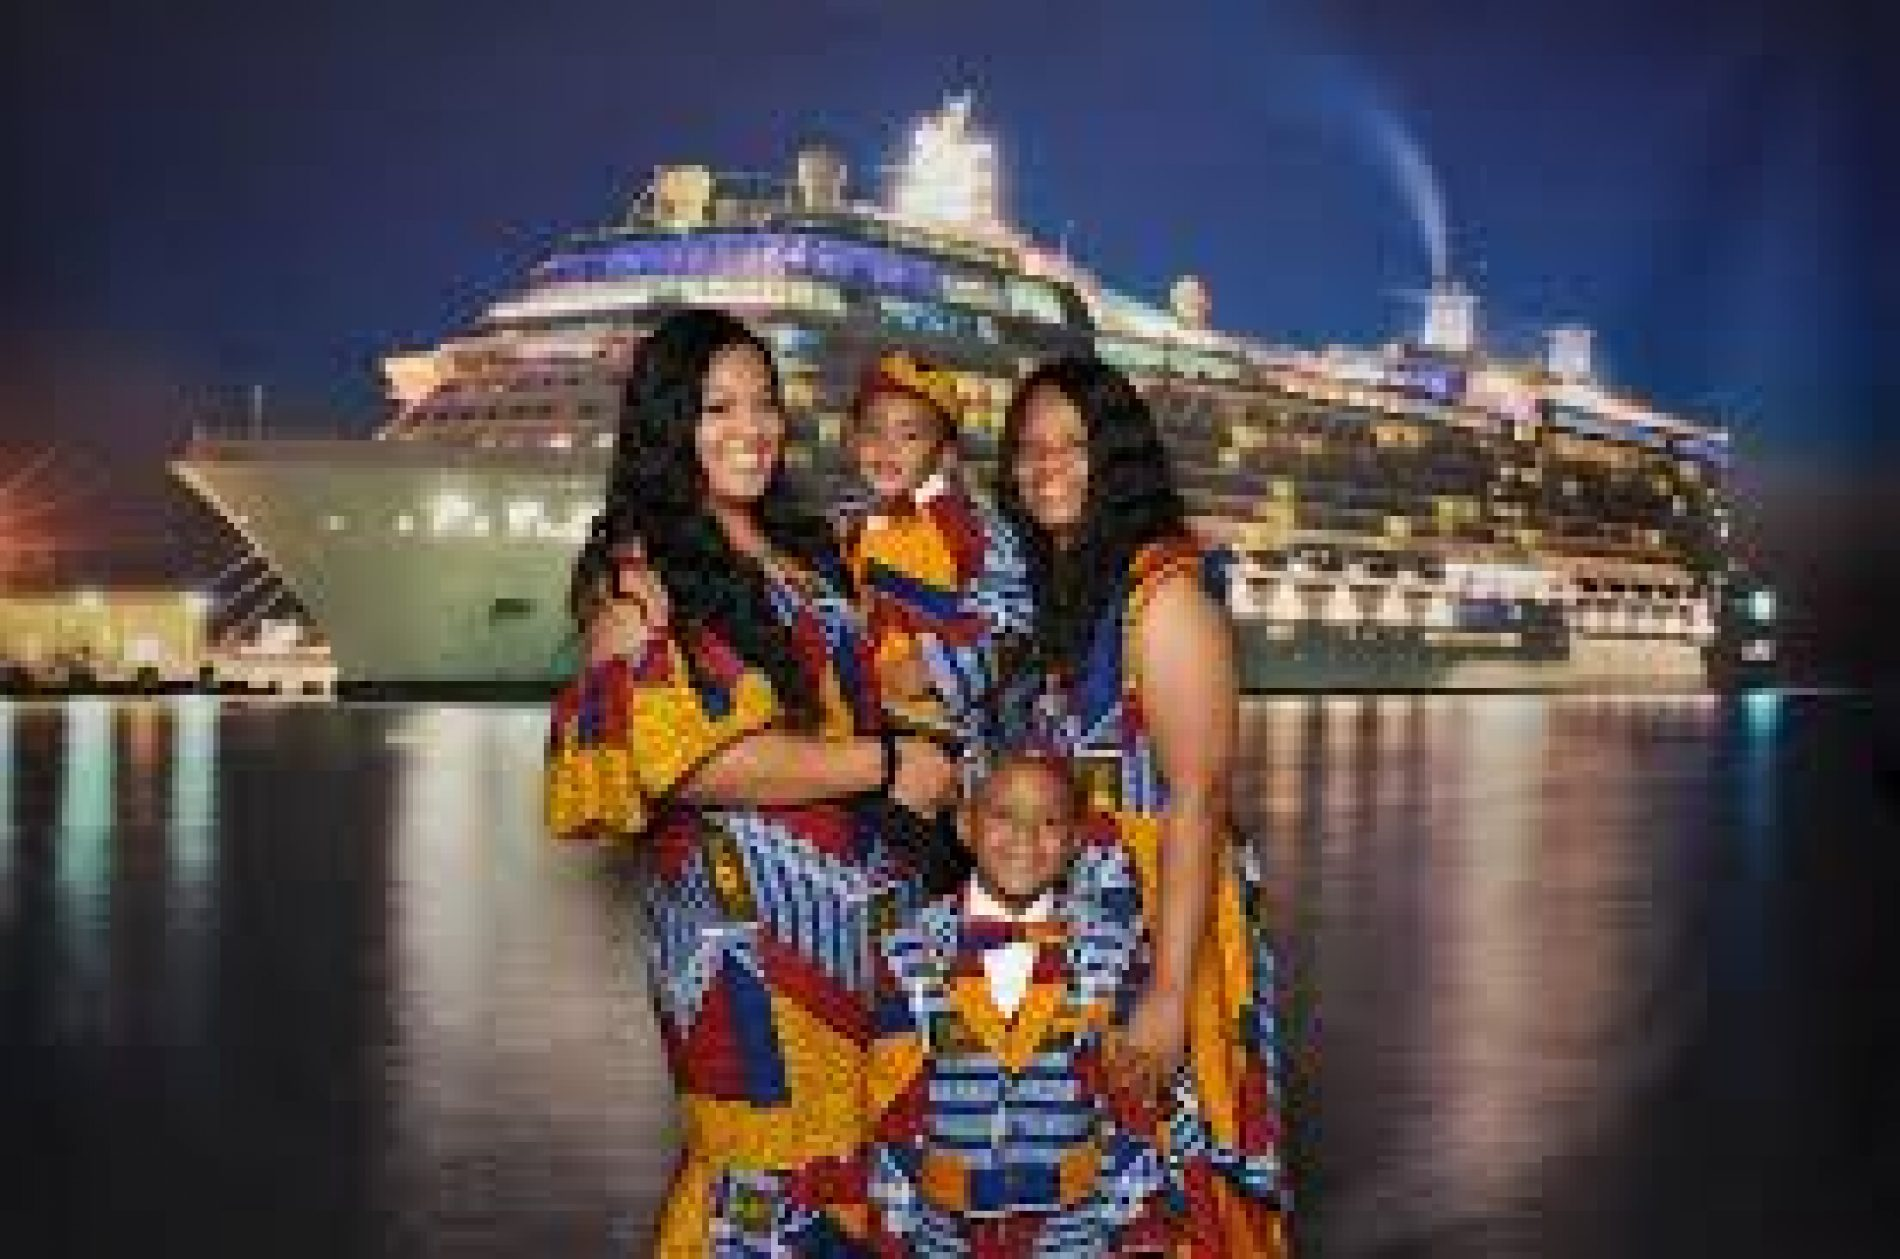 News: Meet The Founder Of The World's First Black-Owned Cruise Experience